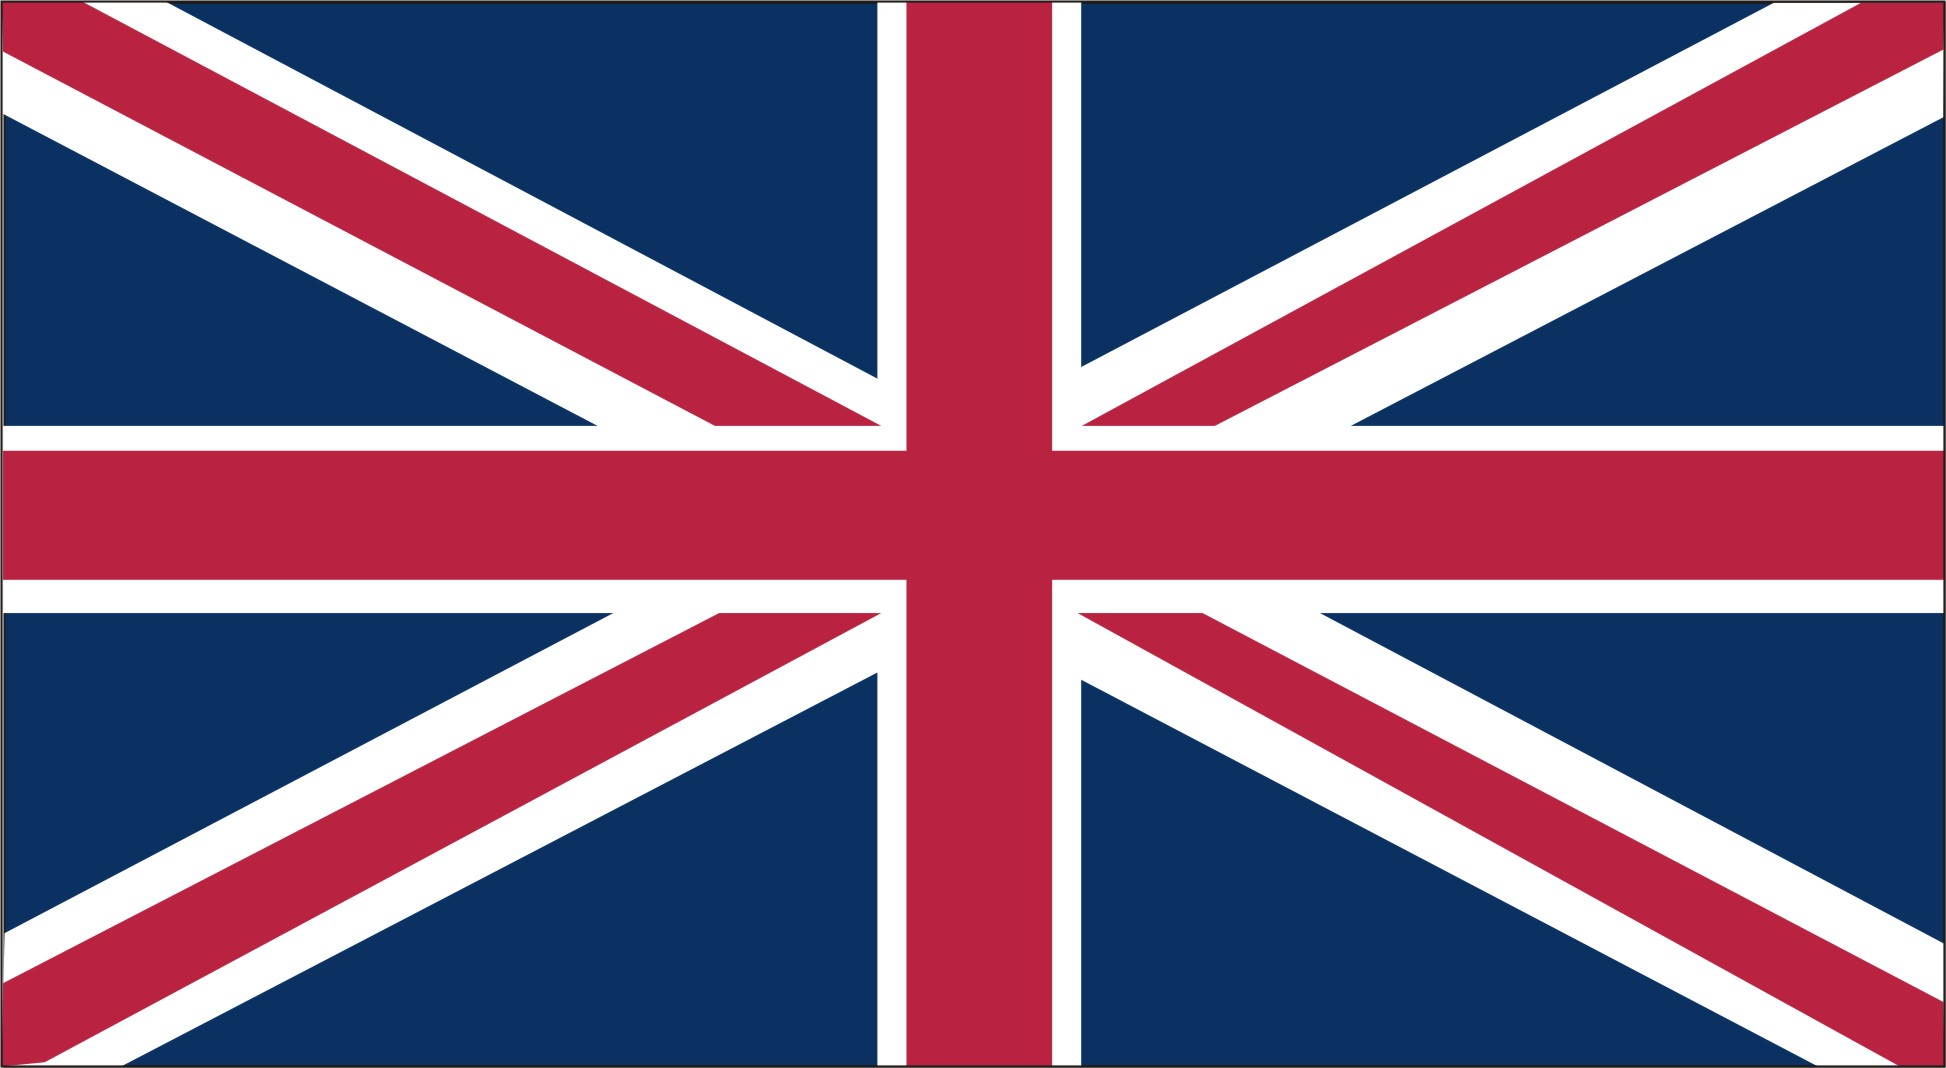 """The Union Jack  of Great Britain  , as well as its descendant flags throughout the commonwealth,""""makereference to three Christian patron saints: the patron saint of England, represented by the red cross of Saint George, the patron saint of Ireland, represented by the red saltire  of Saint Patrick, and the patron saint of Scotland, represented by the saltire of Saint Andrew."""" (Wikipedia)"""